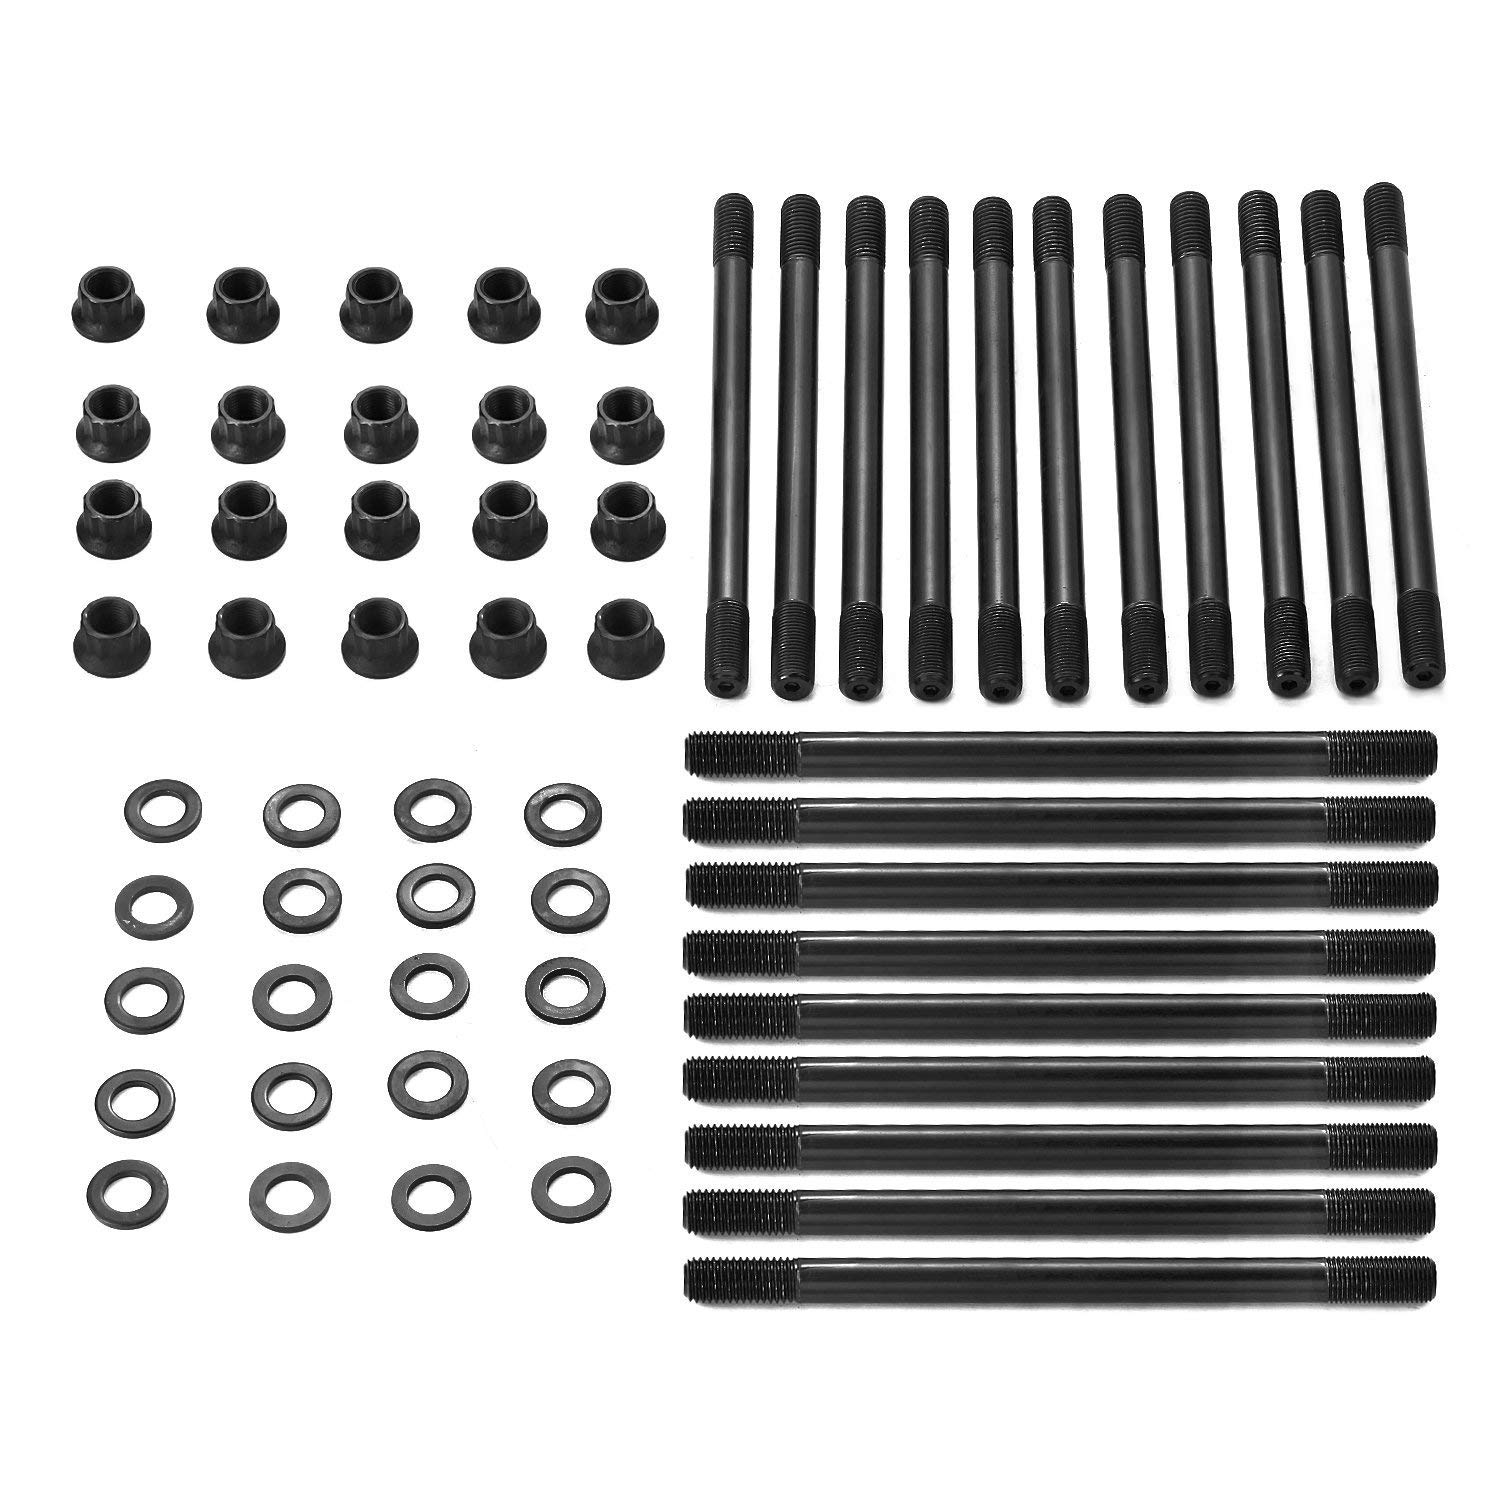 Qauick Cylinder Head Stud Set for 2003-2007 Ford F250 F350 Super Duty 2003-2005 Ford Excursion Powerstroke 6.0L Turbo 250-4202